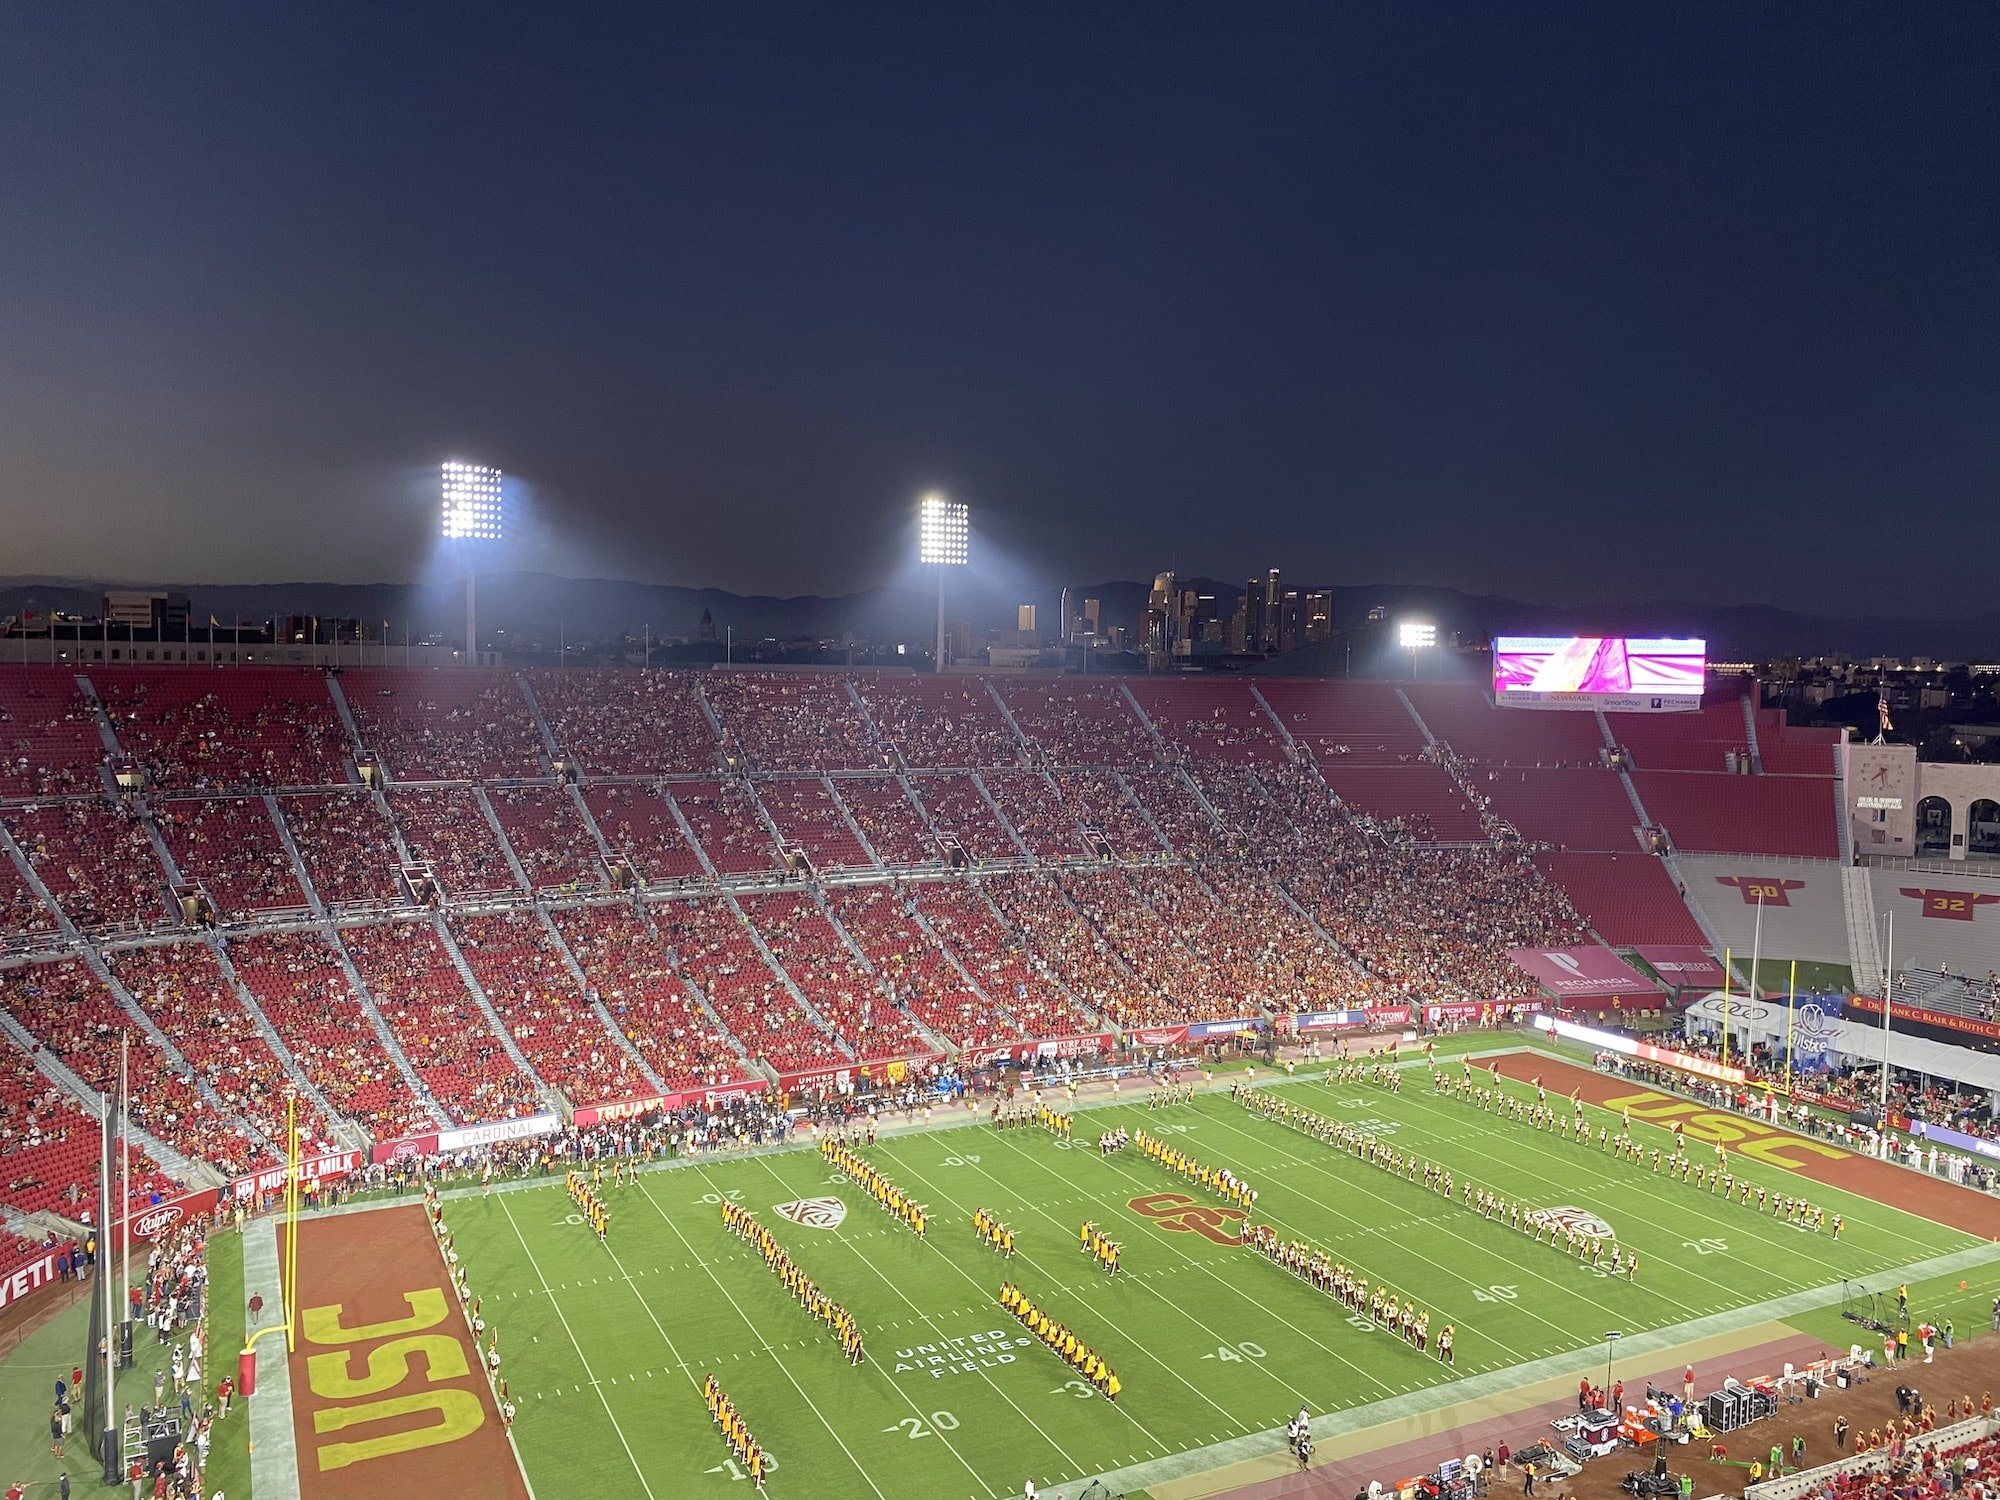 USC Vs Stanford: The Good, The Bad, The Ugly